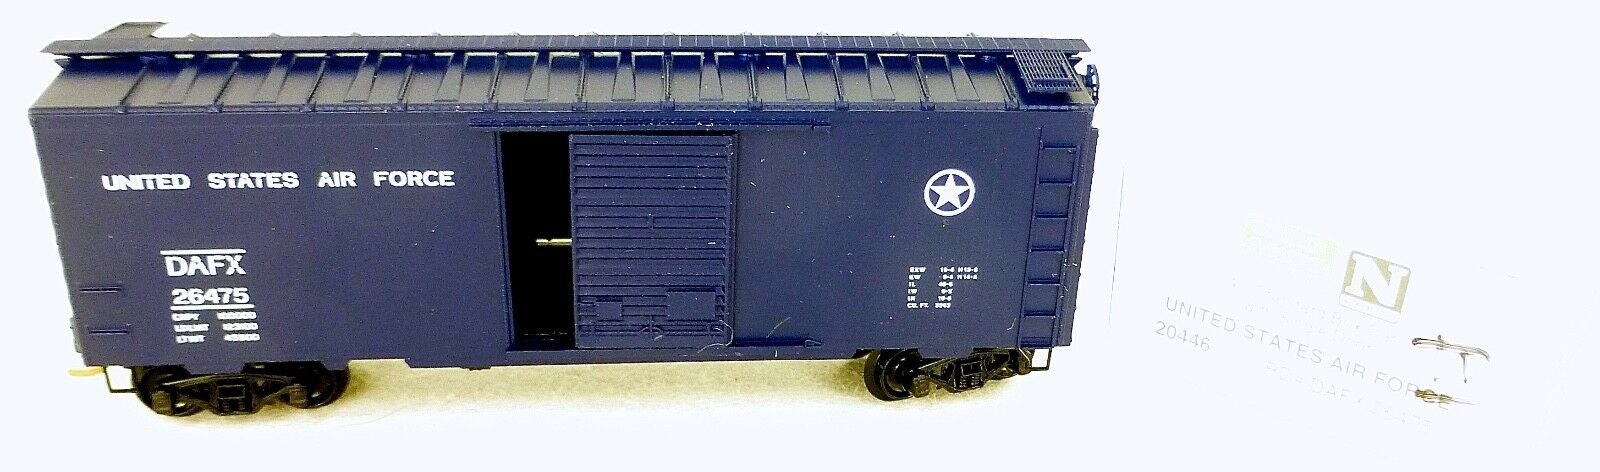 40´ st Boxcar United States Air Force 26475 Micro Trains Line 20446-2 1 160 D Å